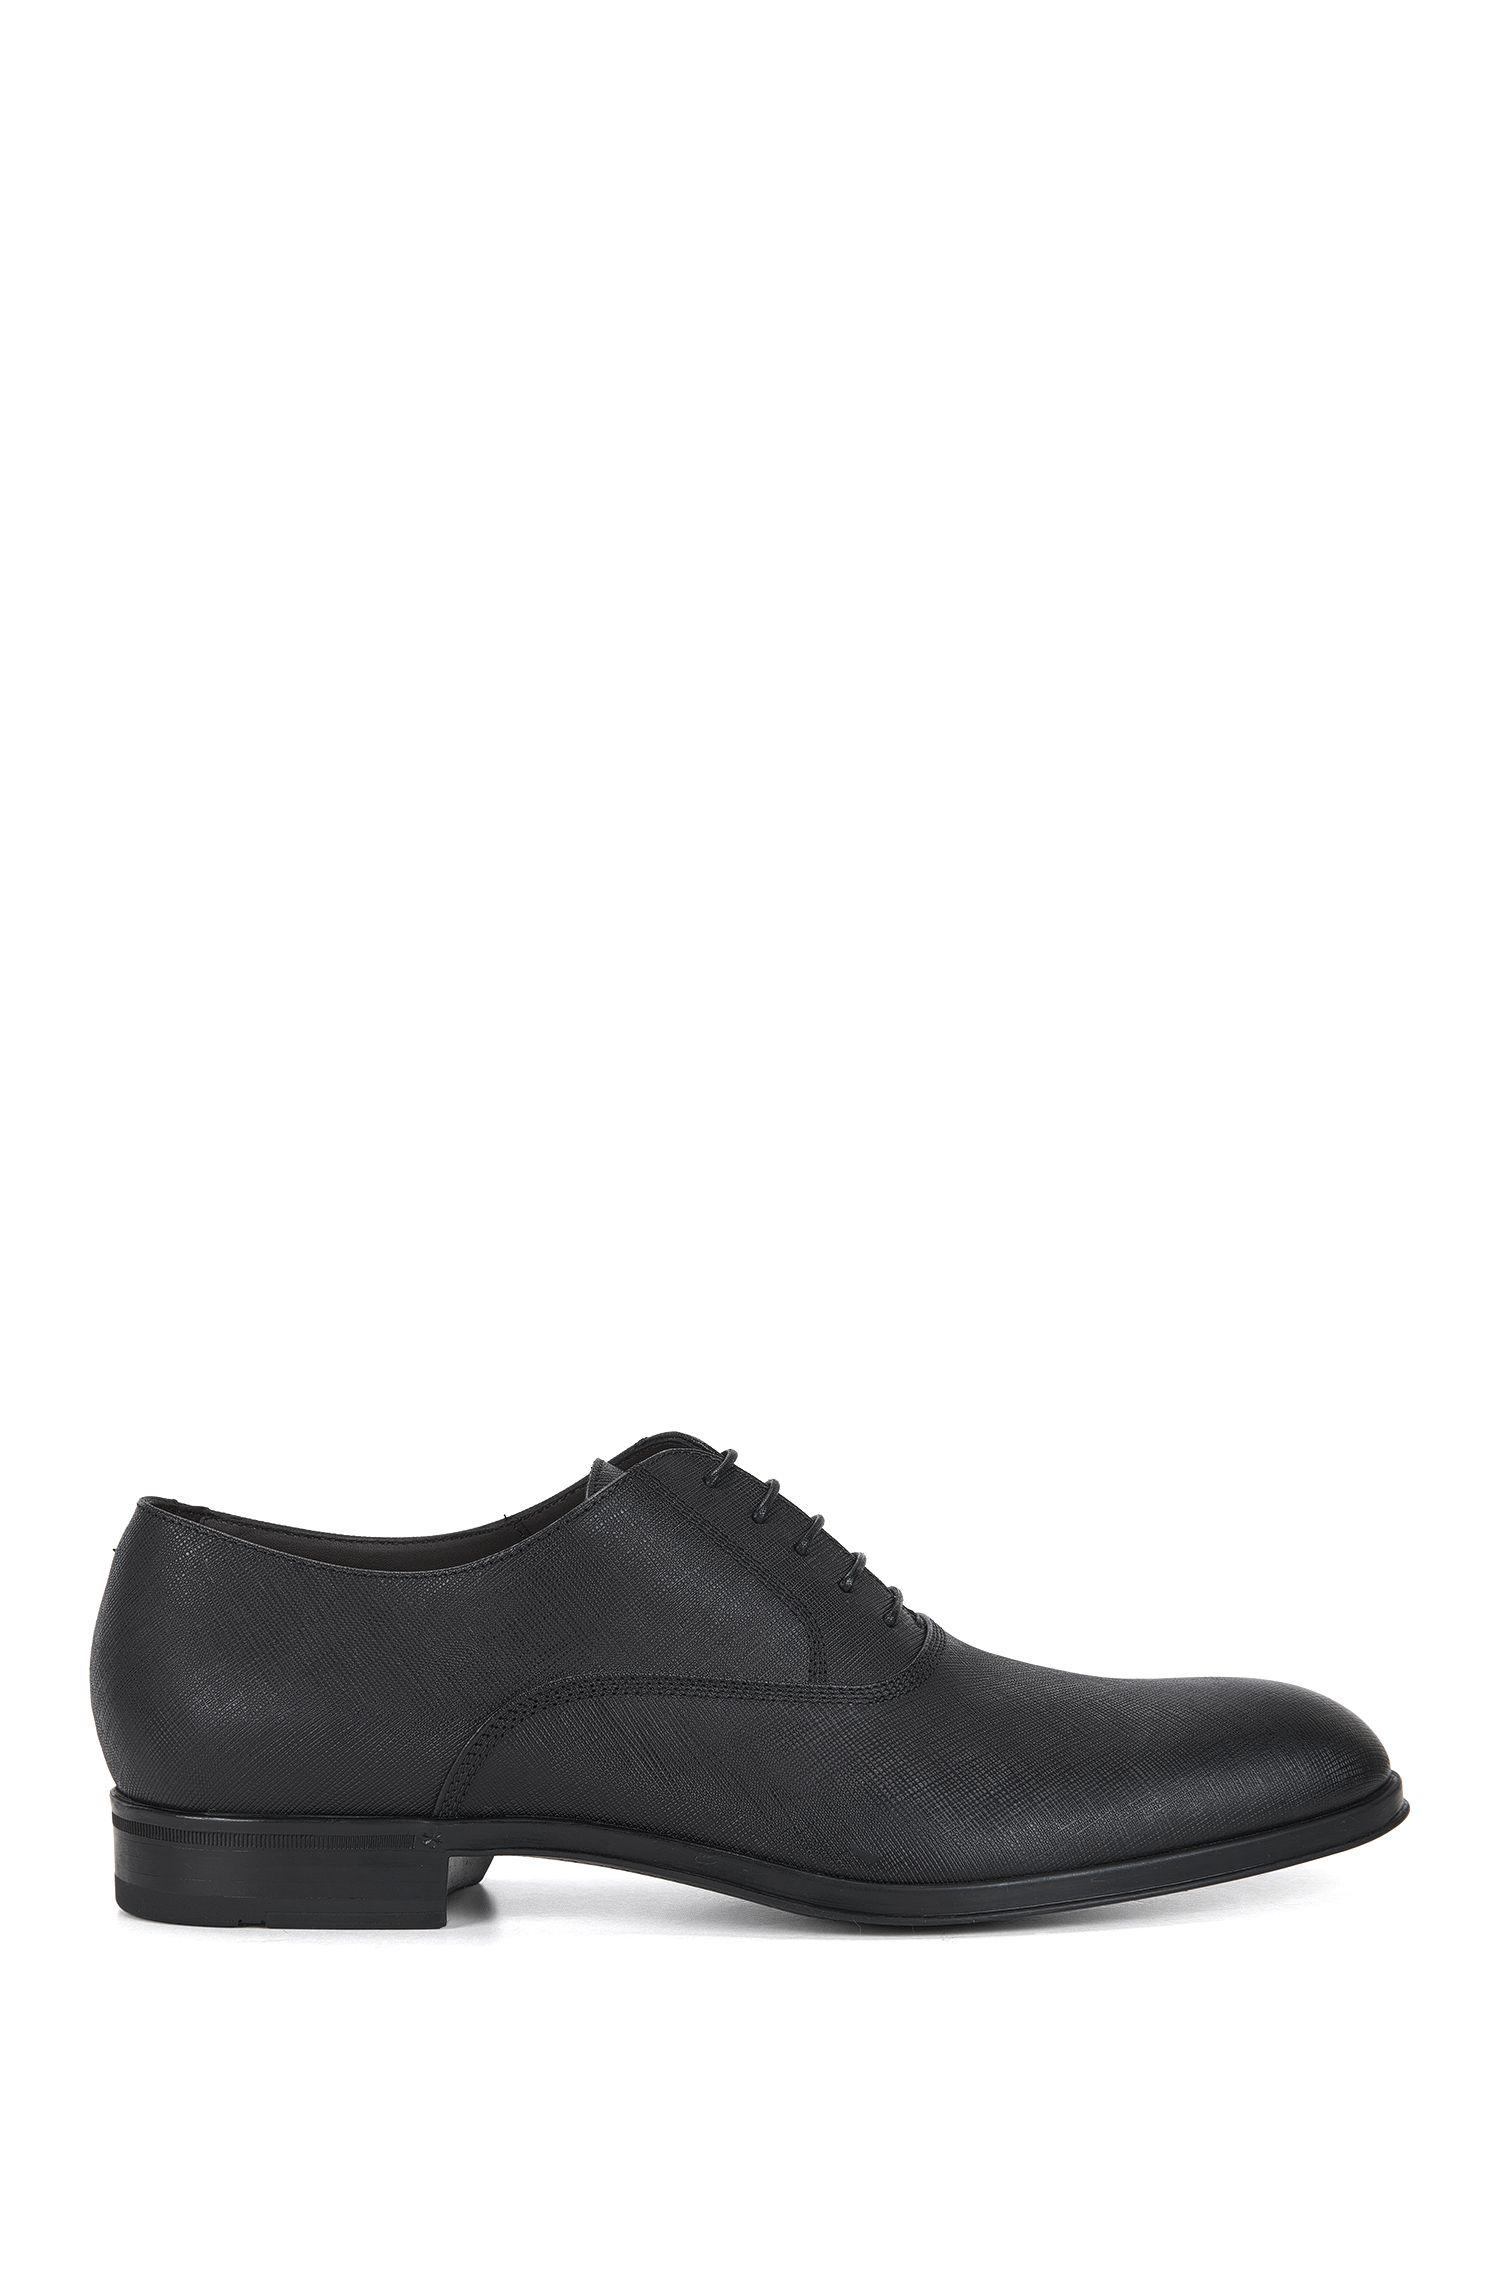 Lace-up Derby shoes in embossed leather